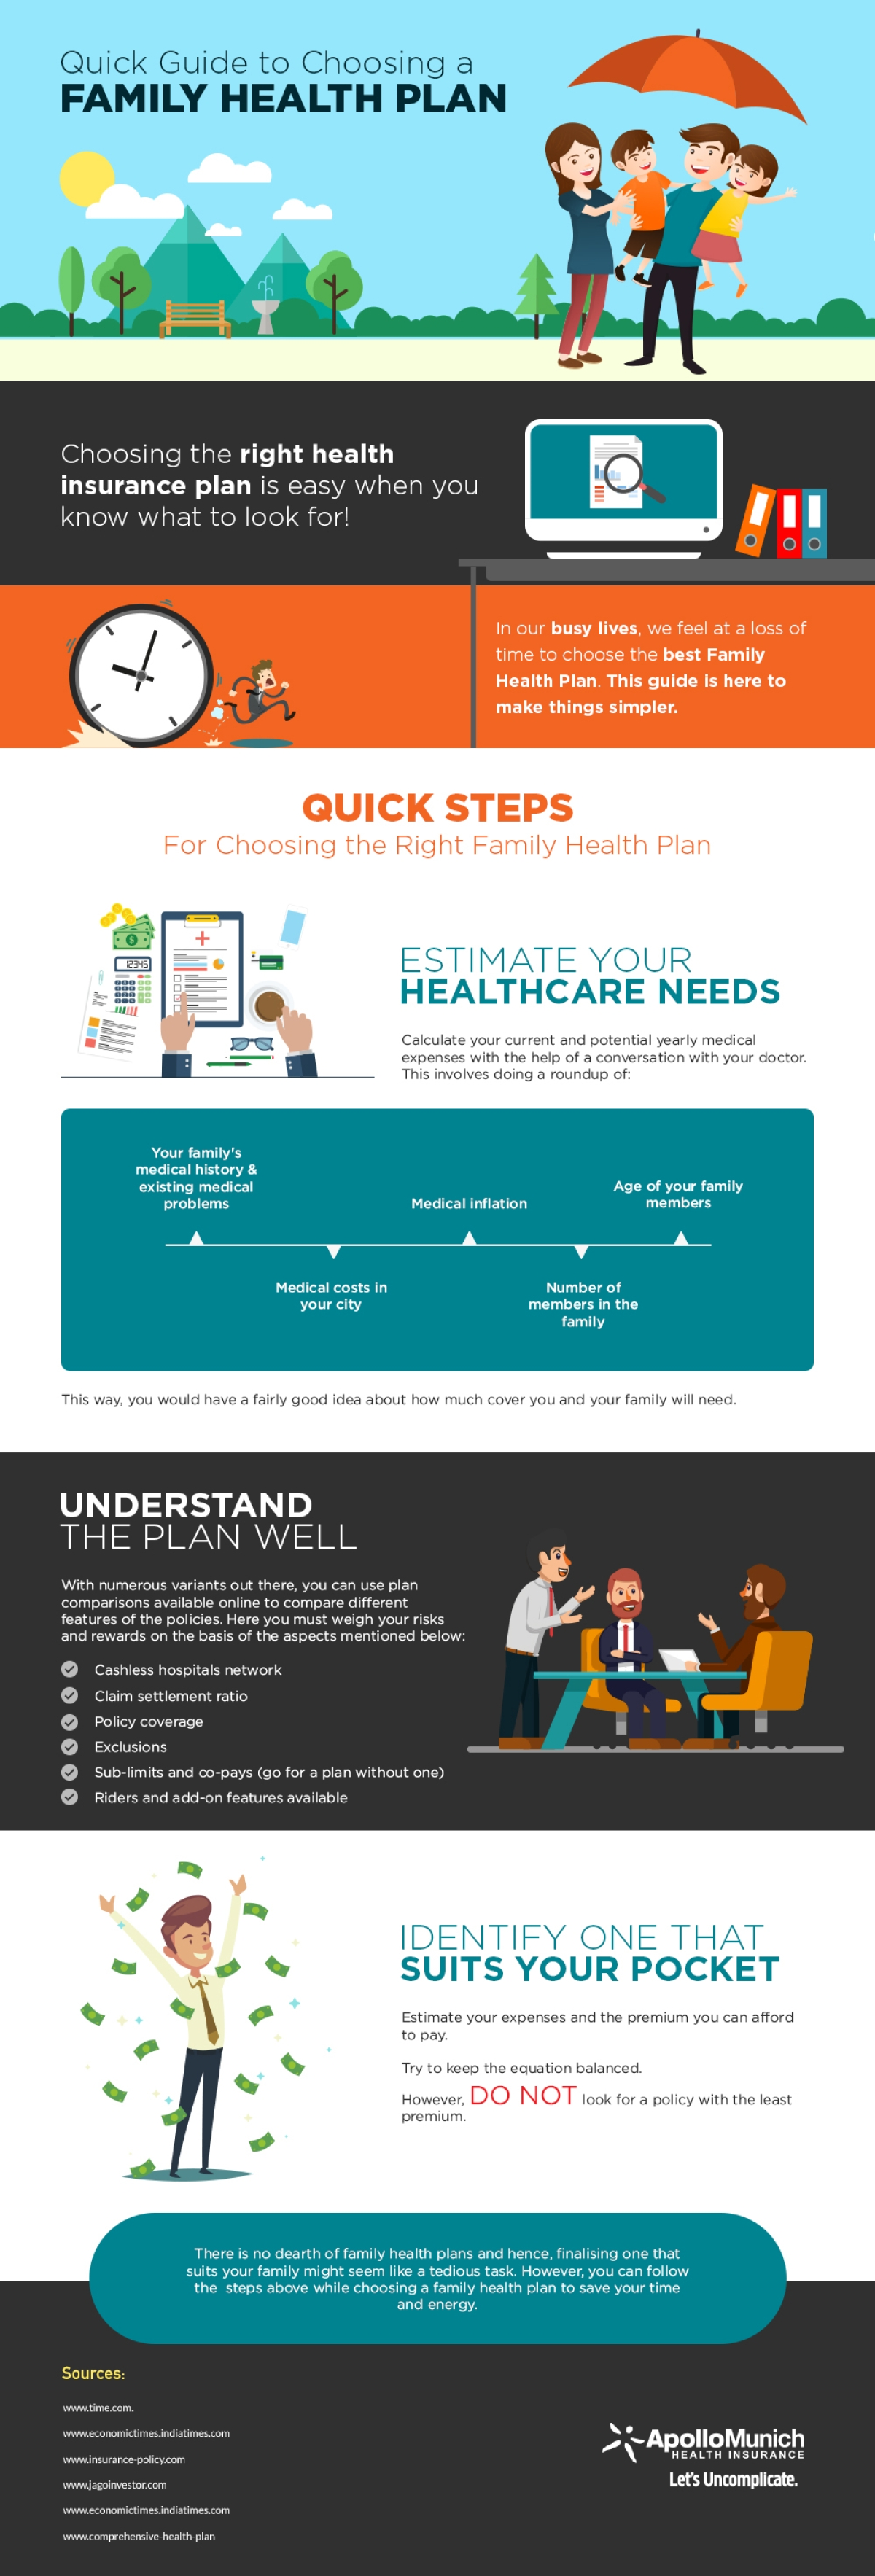 What Does Your Family Health Insurance NOT Cover?